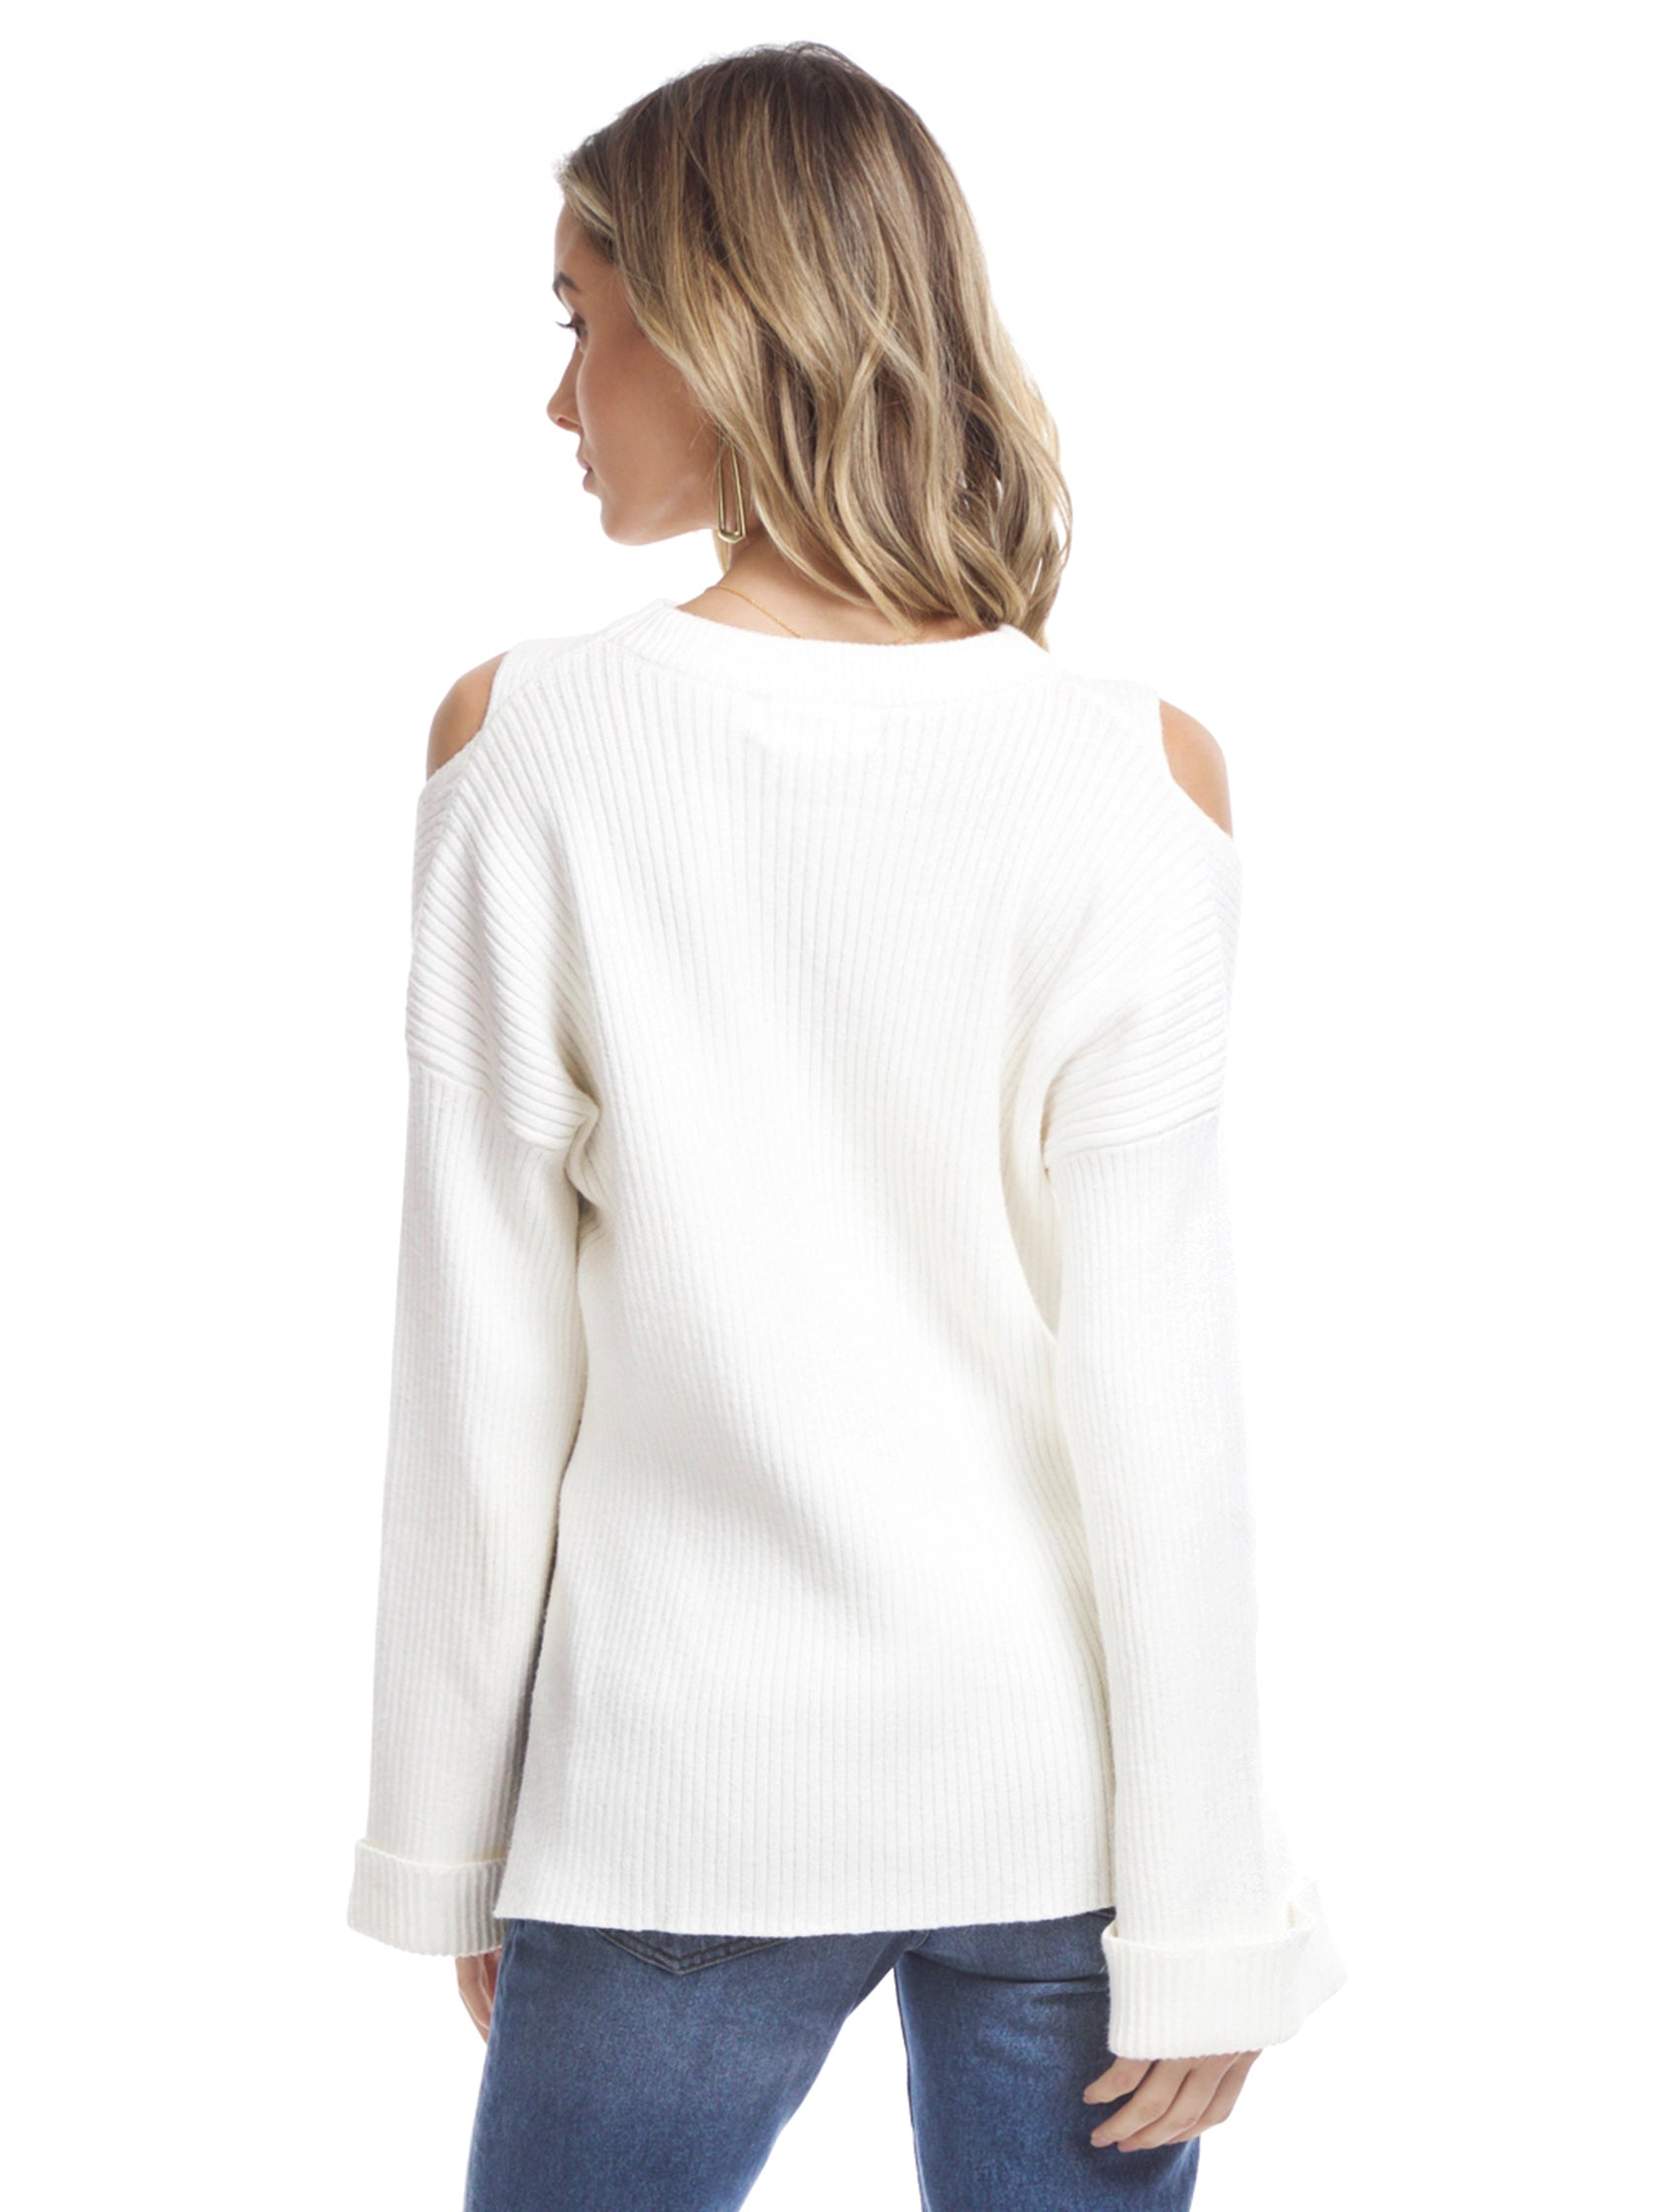 Women outfit in a sweater rental from Line & Dot called Trou Cold Shoulder Sweater